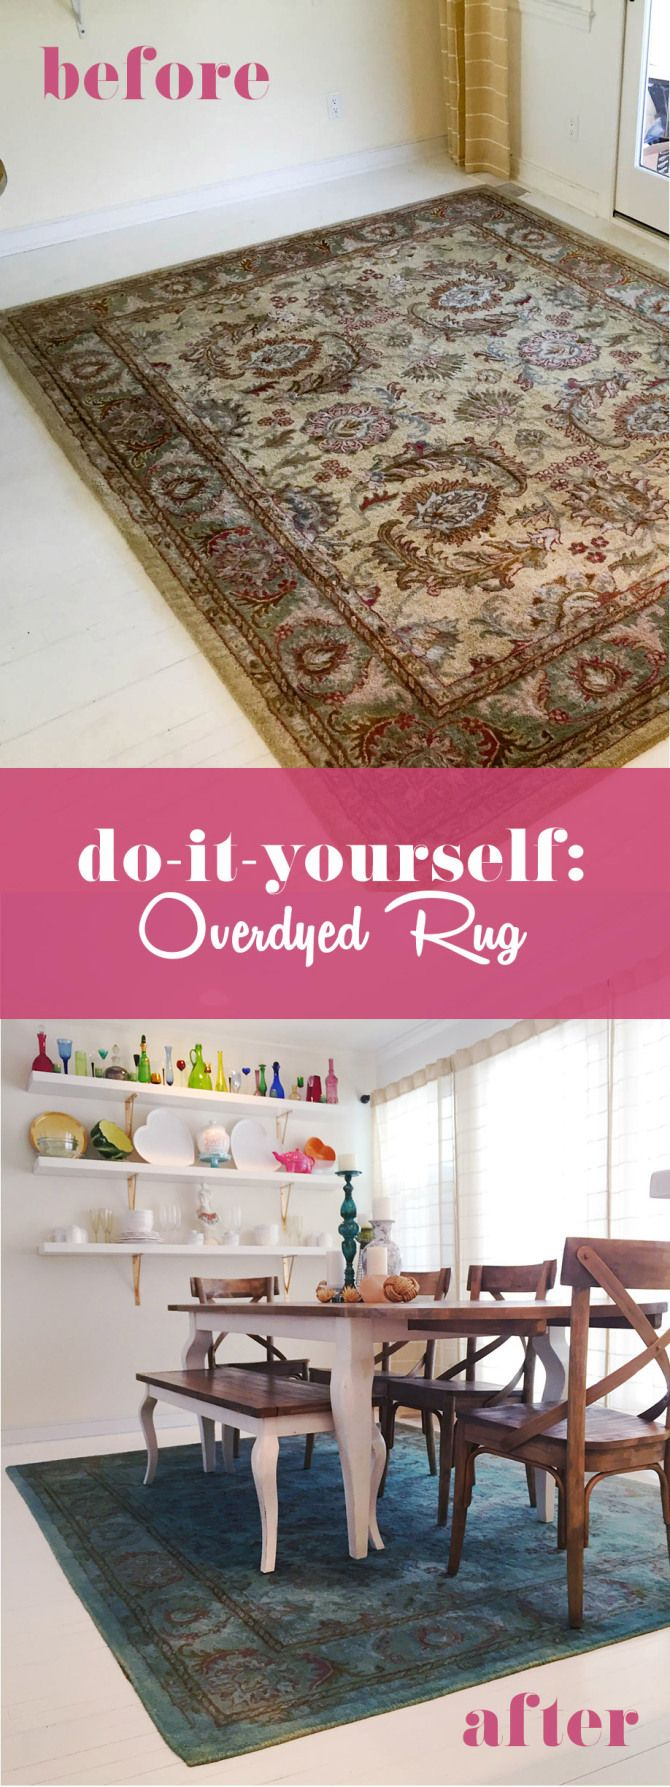 How to make fabric dye - Overdyed Rug With Rit Fabric Dye Diy Brilliant Bleaching The Rug First Might Make The Dye Color Brighter And More Vibrant